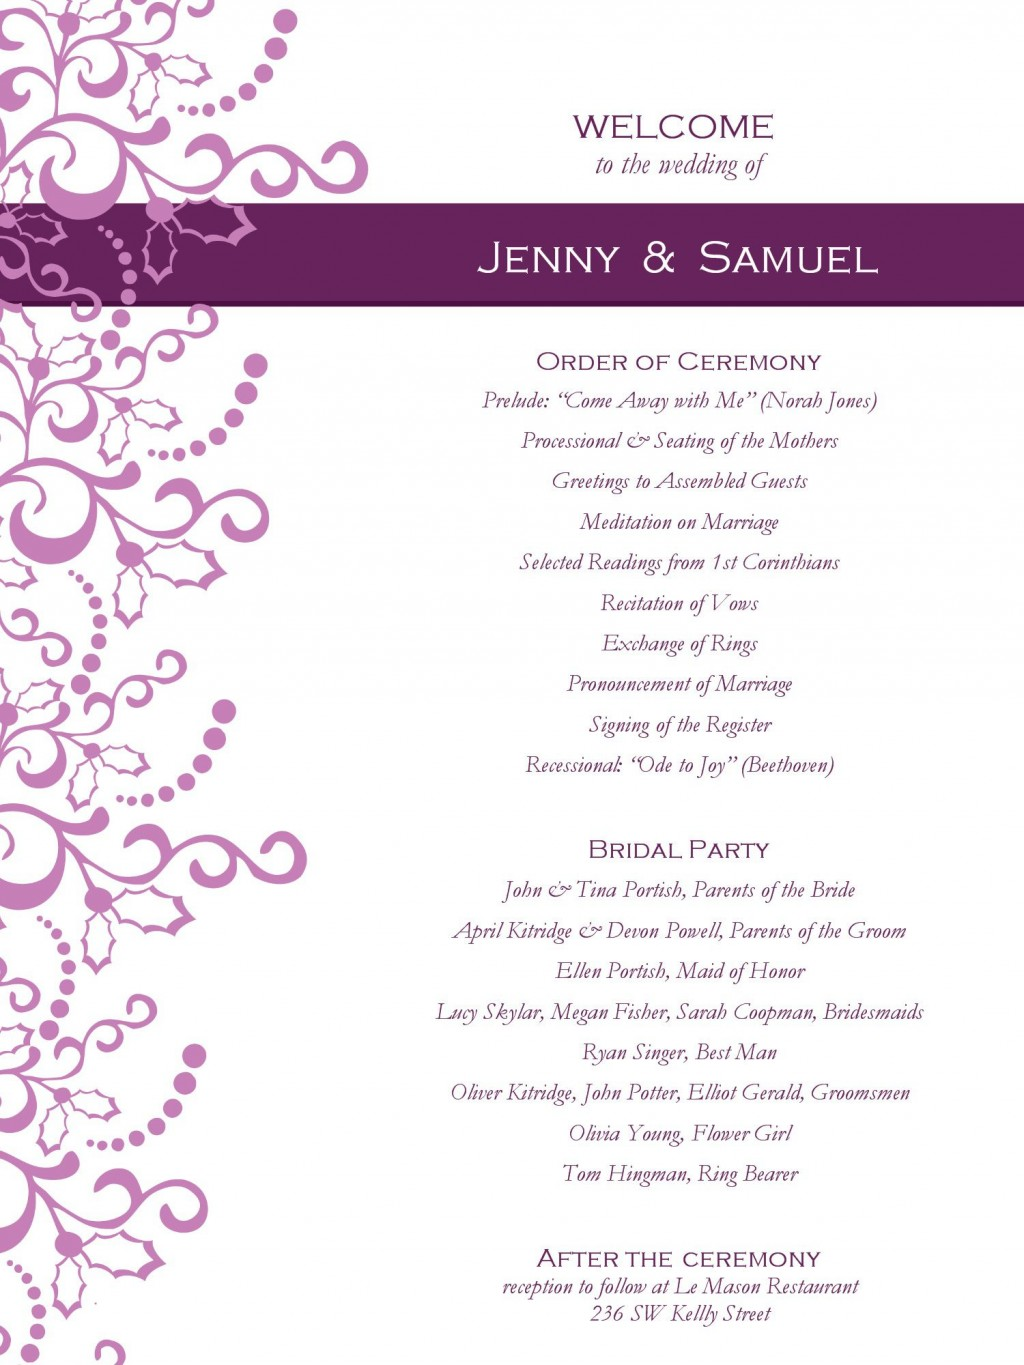 000 Rare Wedding Reception Programme Template High Def  Program Microsoft Word Free Downloadable PdfLarge